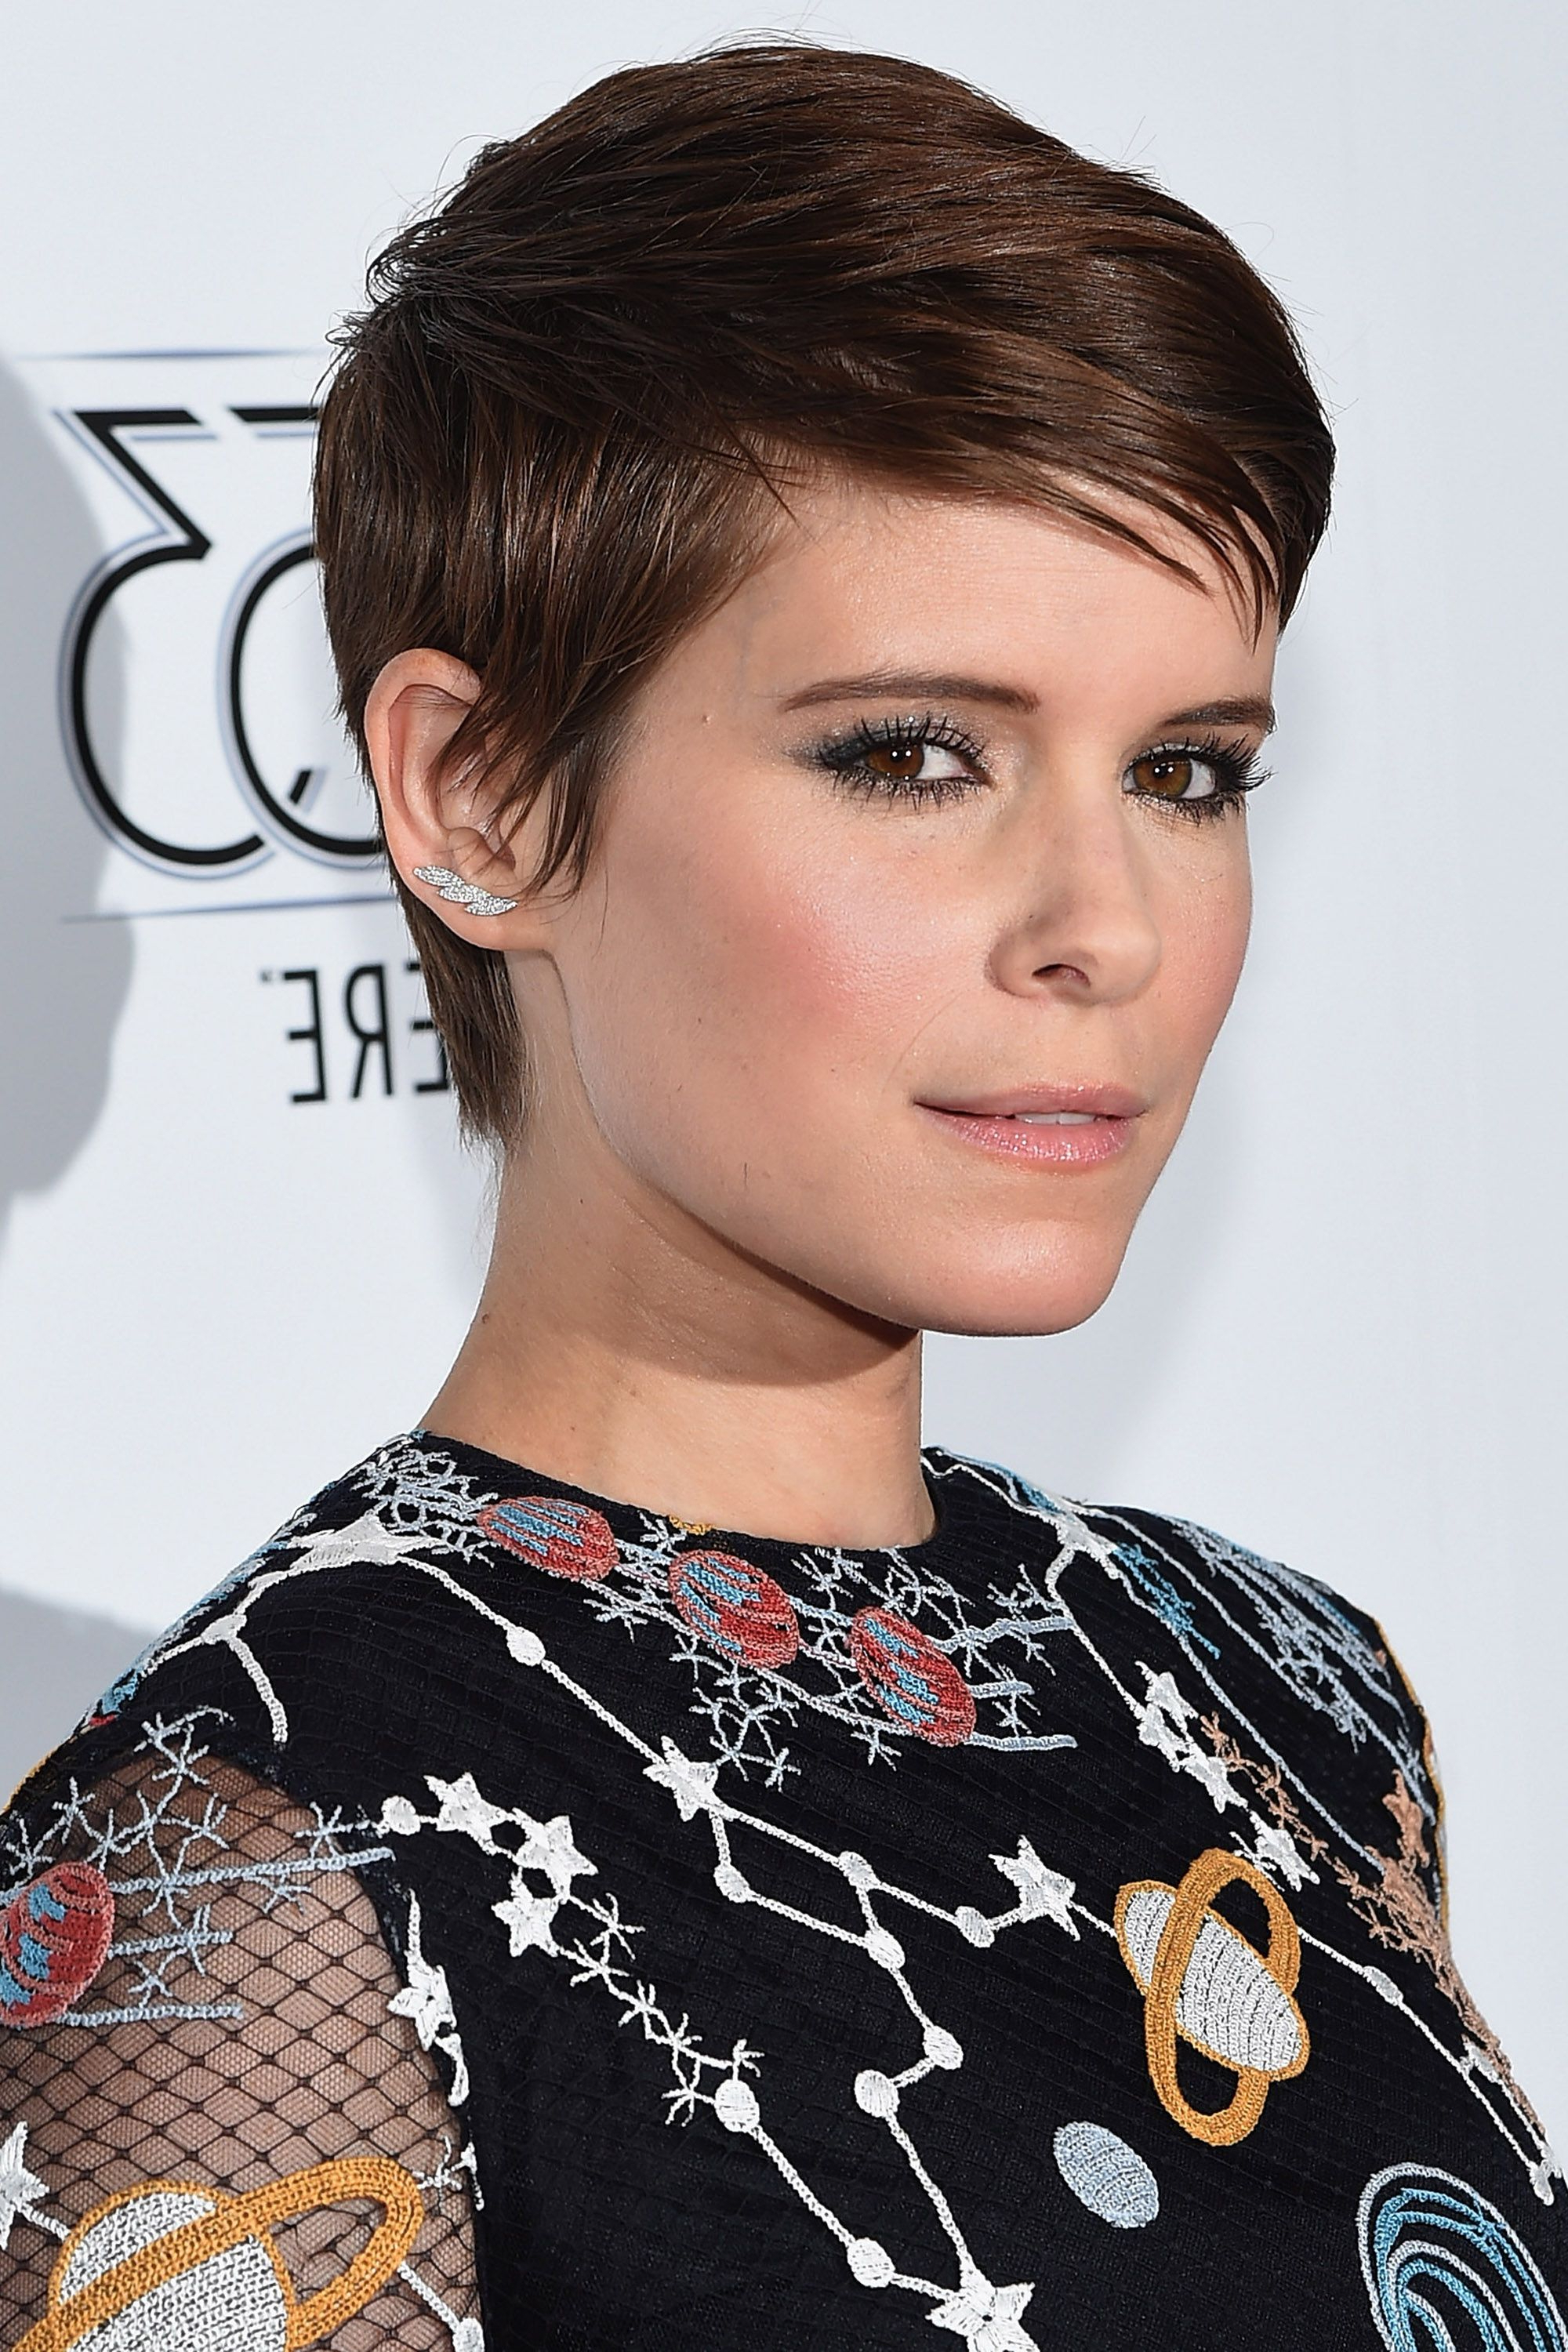 50+ Pixie Cuts We Love For 2018 – Short Pixie Hairstyles From Pertaining To Super Short Haircuts For Girls (View 23 of 25)